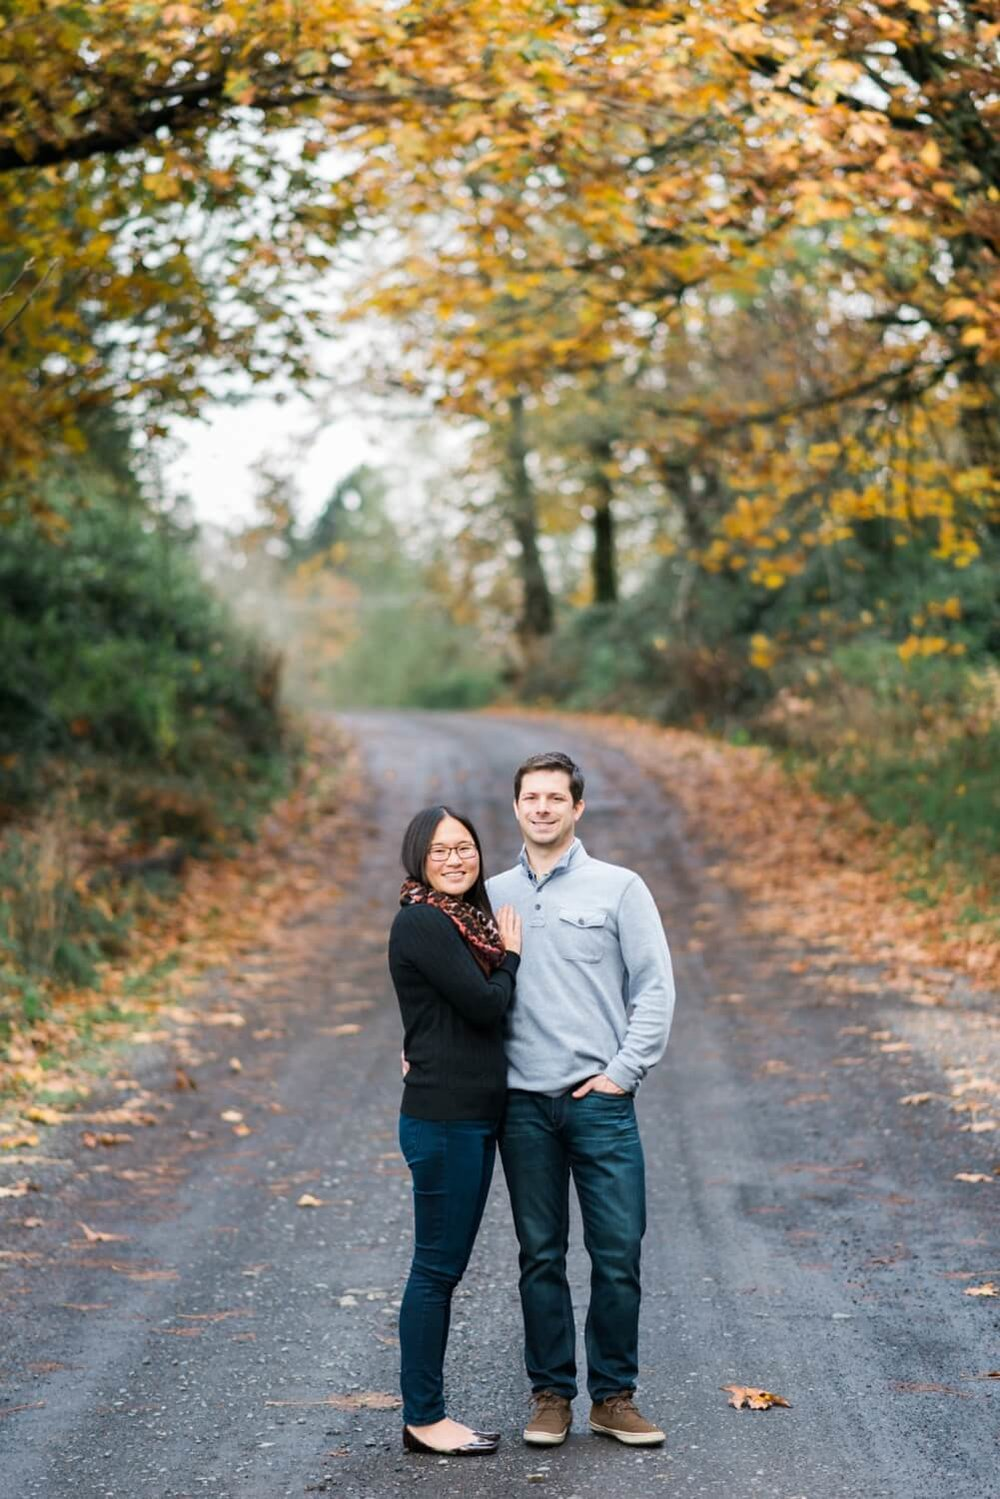 portland-engagement-colubia-river-gorge-latourell-waterfall-autumn-fall-crown-point-shelley-marie-photo-16_cr.jpg